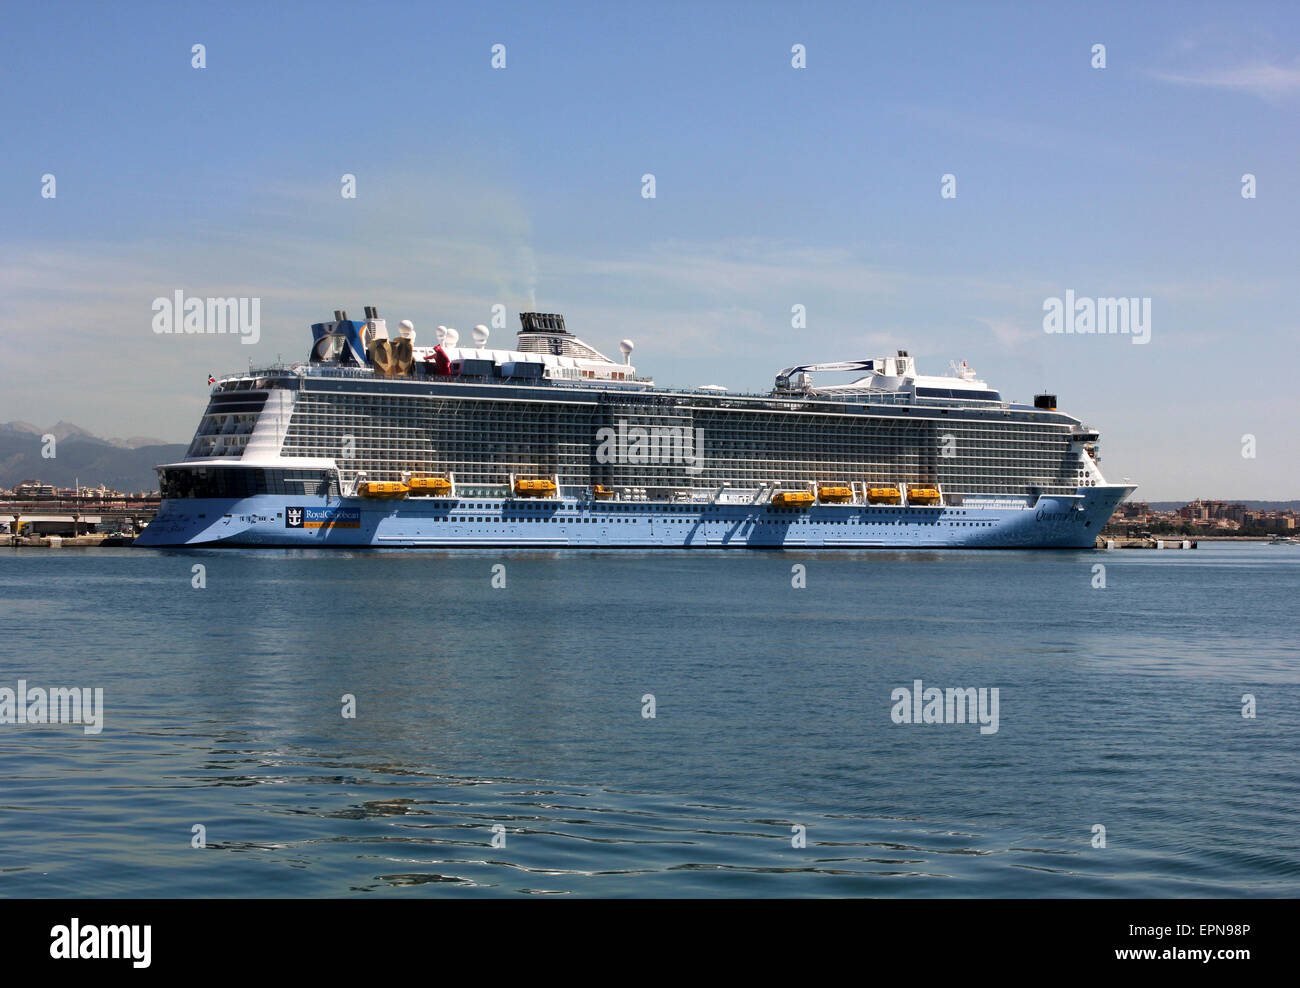 "Mega Cruise ship ""QUANTUM OF THE SEAS"" ( 347.08 mtrs long - launched in 2014 - 4,100 passengers - 18 decks ) - Palma - Stock Image"